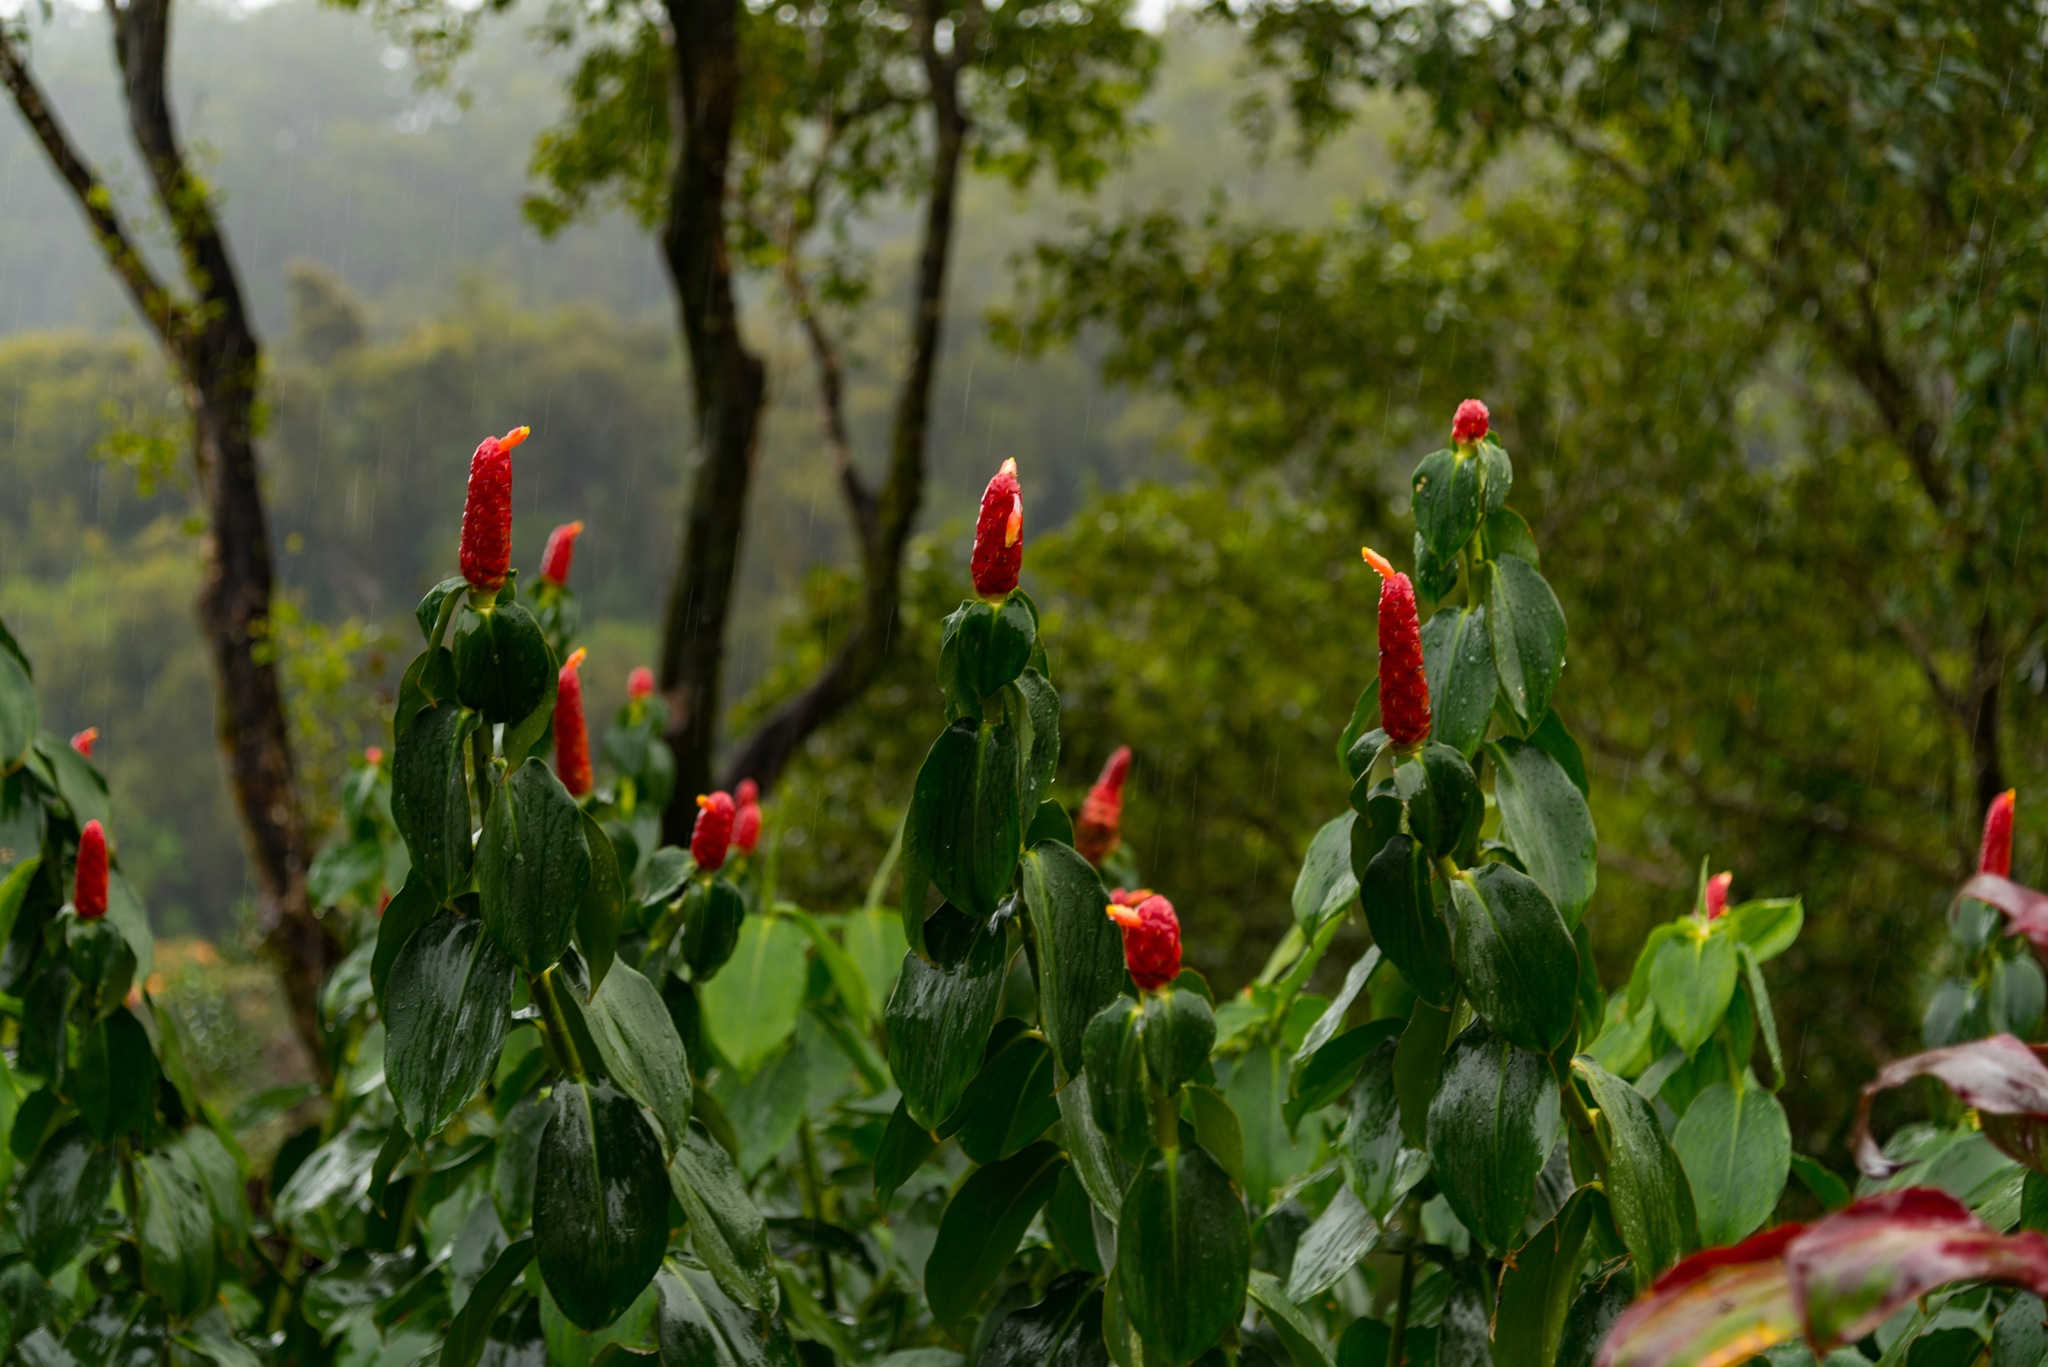 RED FLOWERS IN THE RAIN by DrJohnHodgson